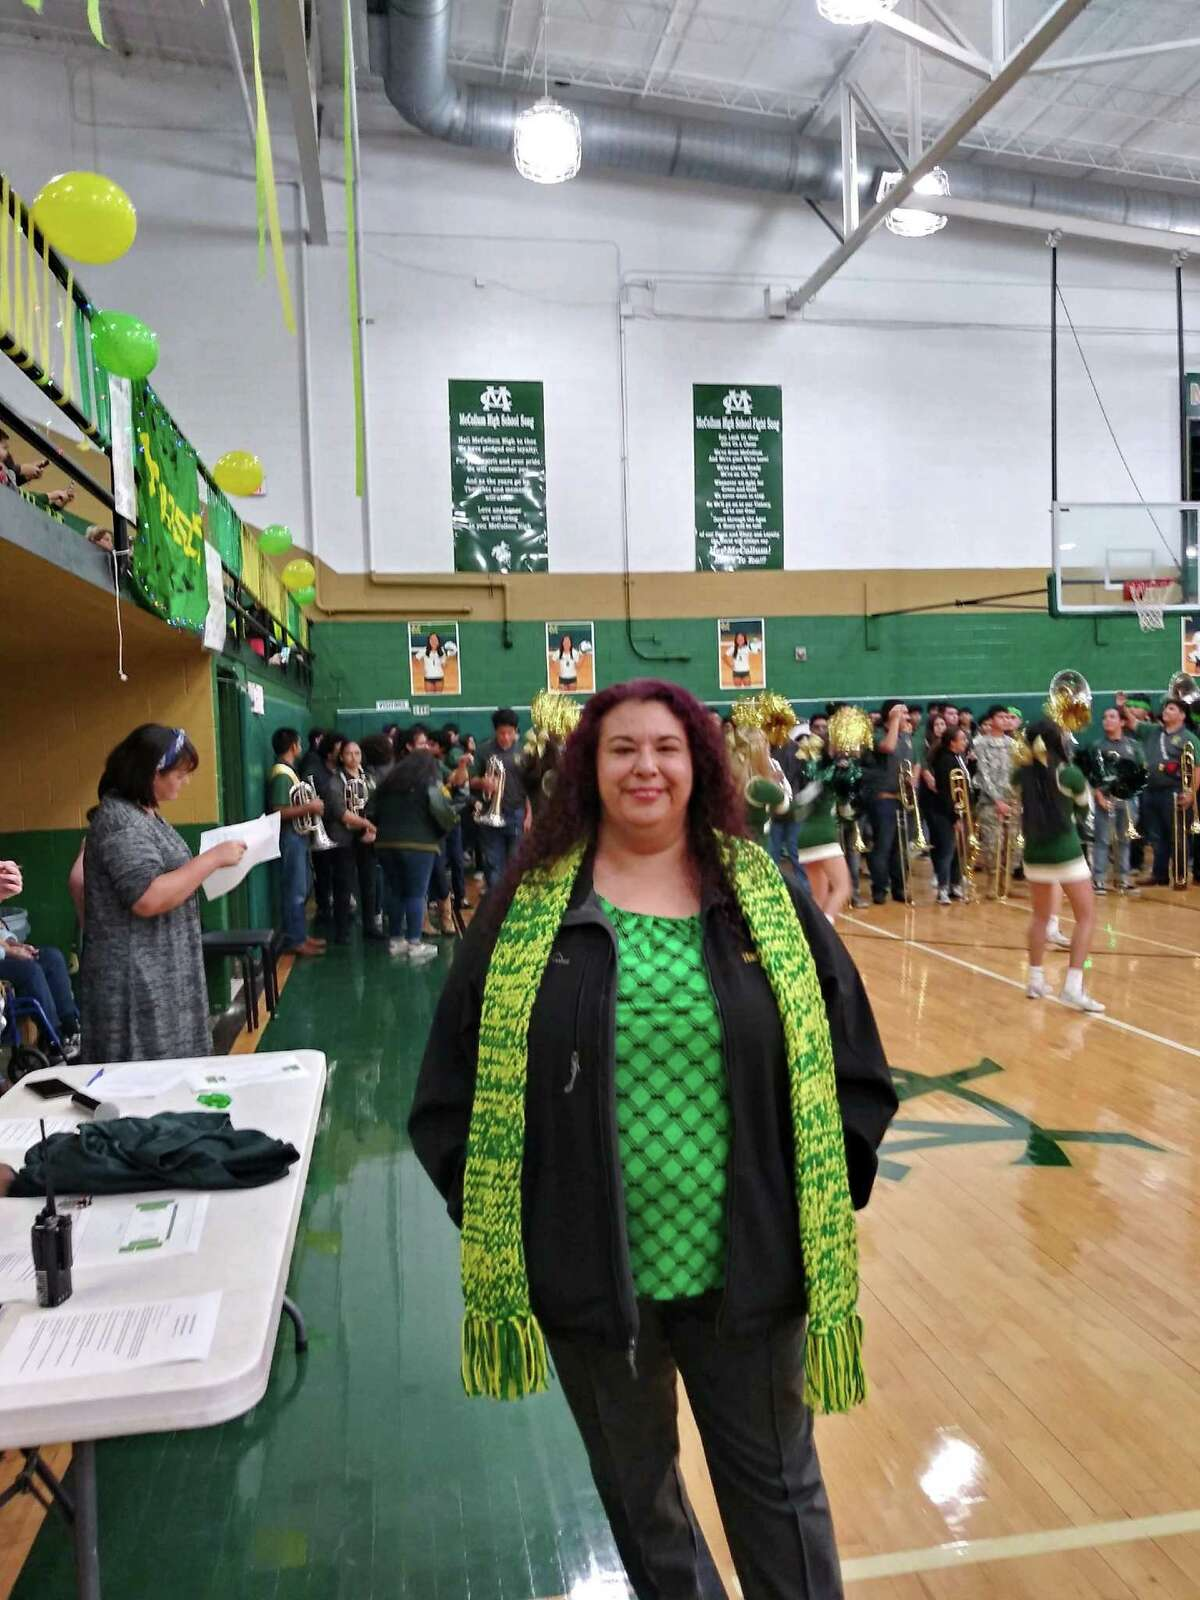 Incumbent Christine A. Carrillo, 54, is running against Orlando Salazar to keep the District 2 seat on Harlandale ISD's board of trustees.